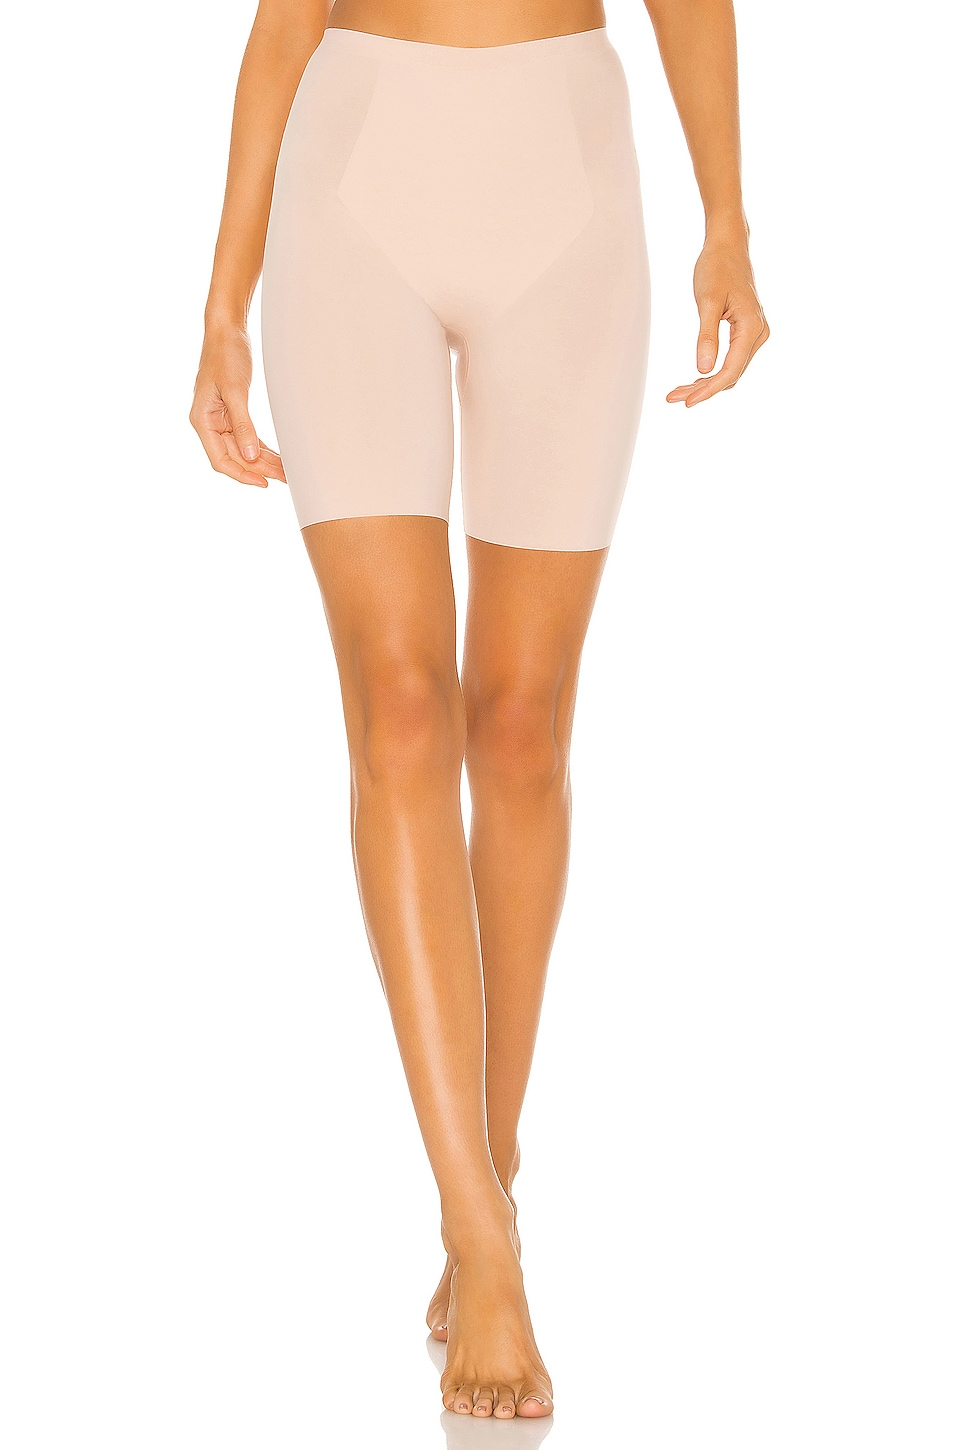 SPANX Thinstincts Mid Thigh Short in Soft Nude